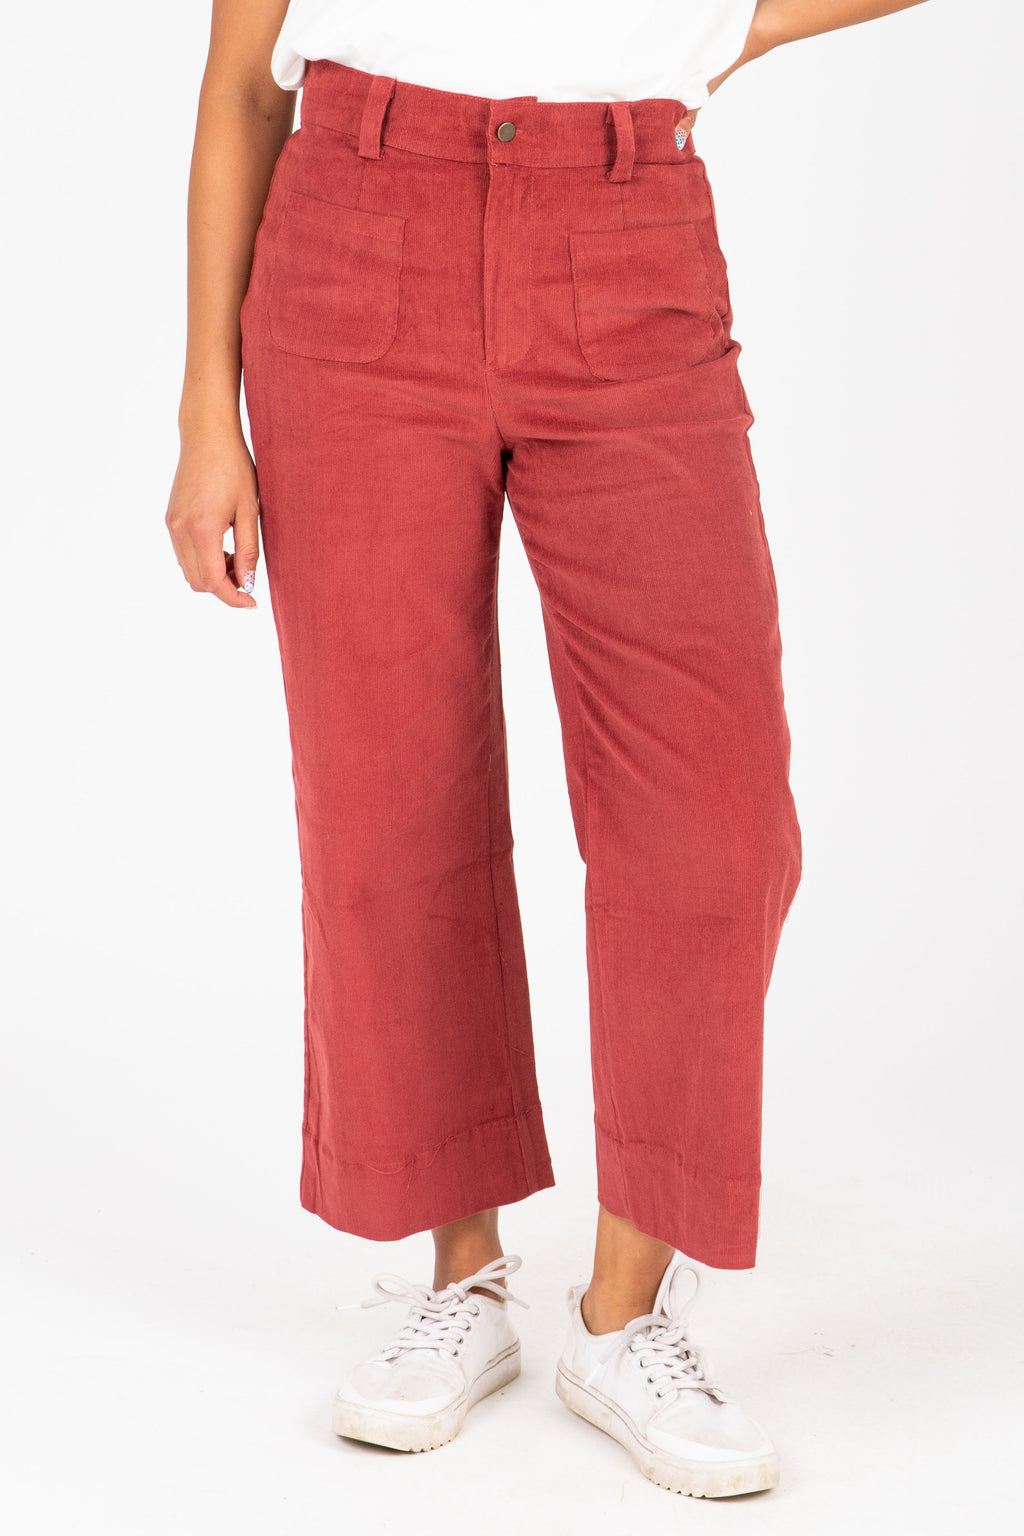 The Kyler Wide Leg Trouser in Berry, studio shoot; front view